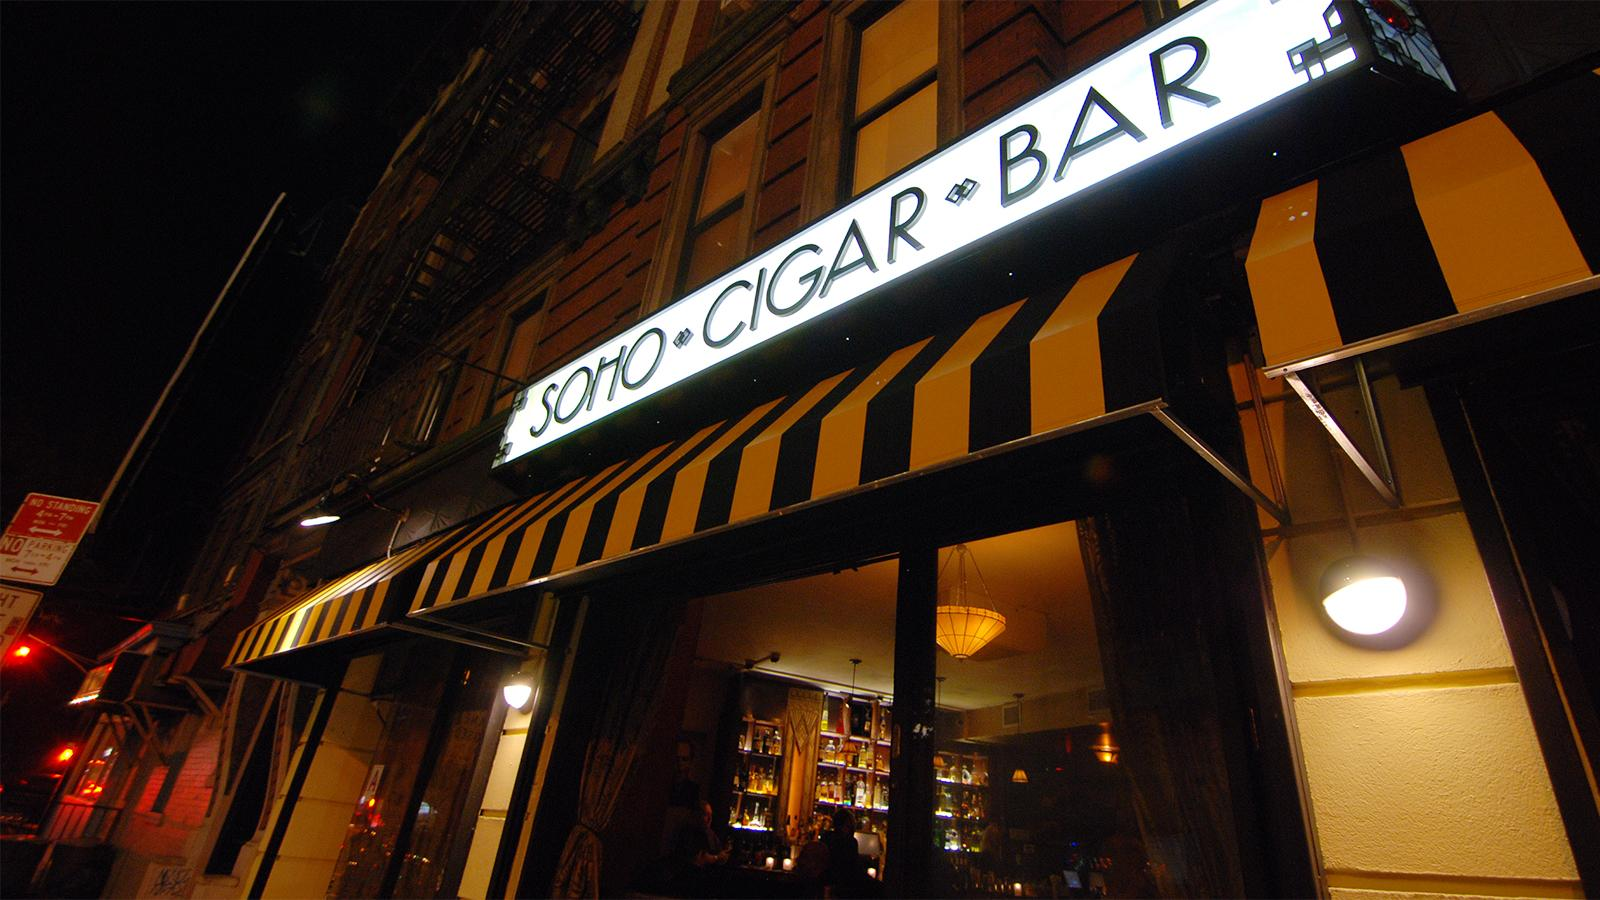 Where To Smoke: Soho Cigar Bar, New York City